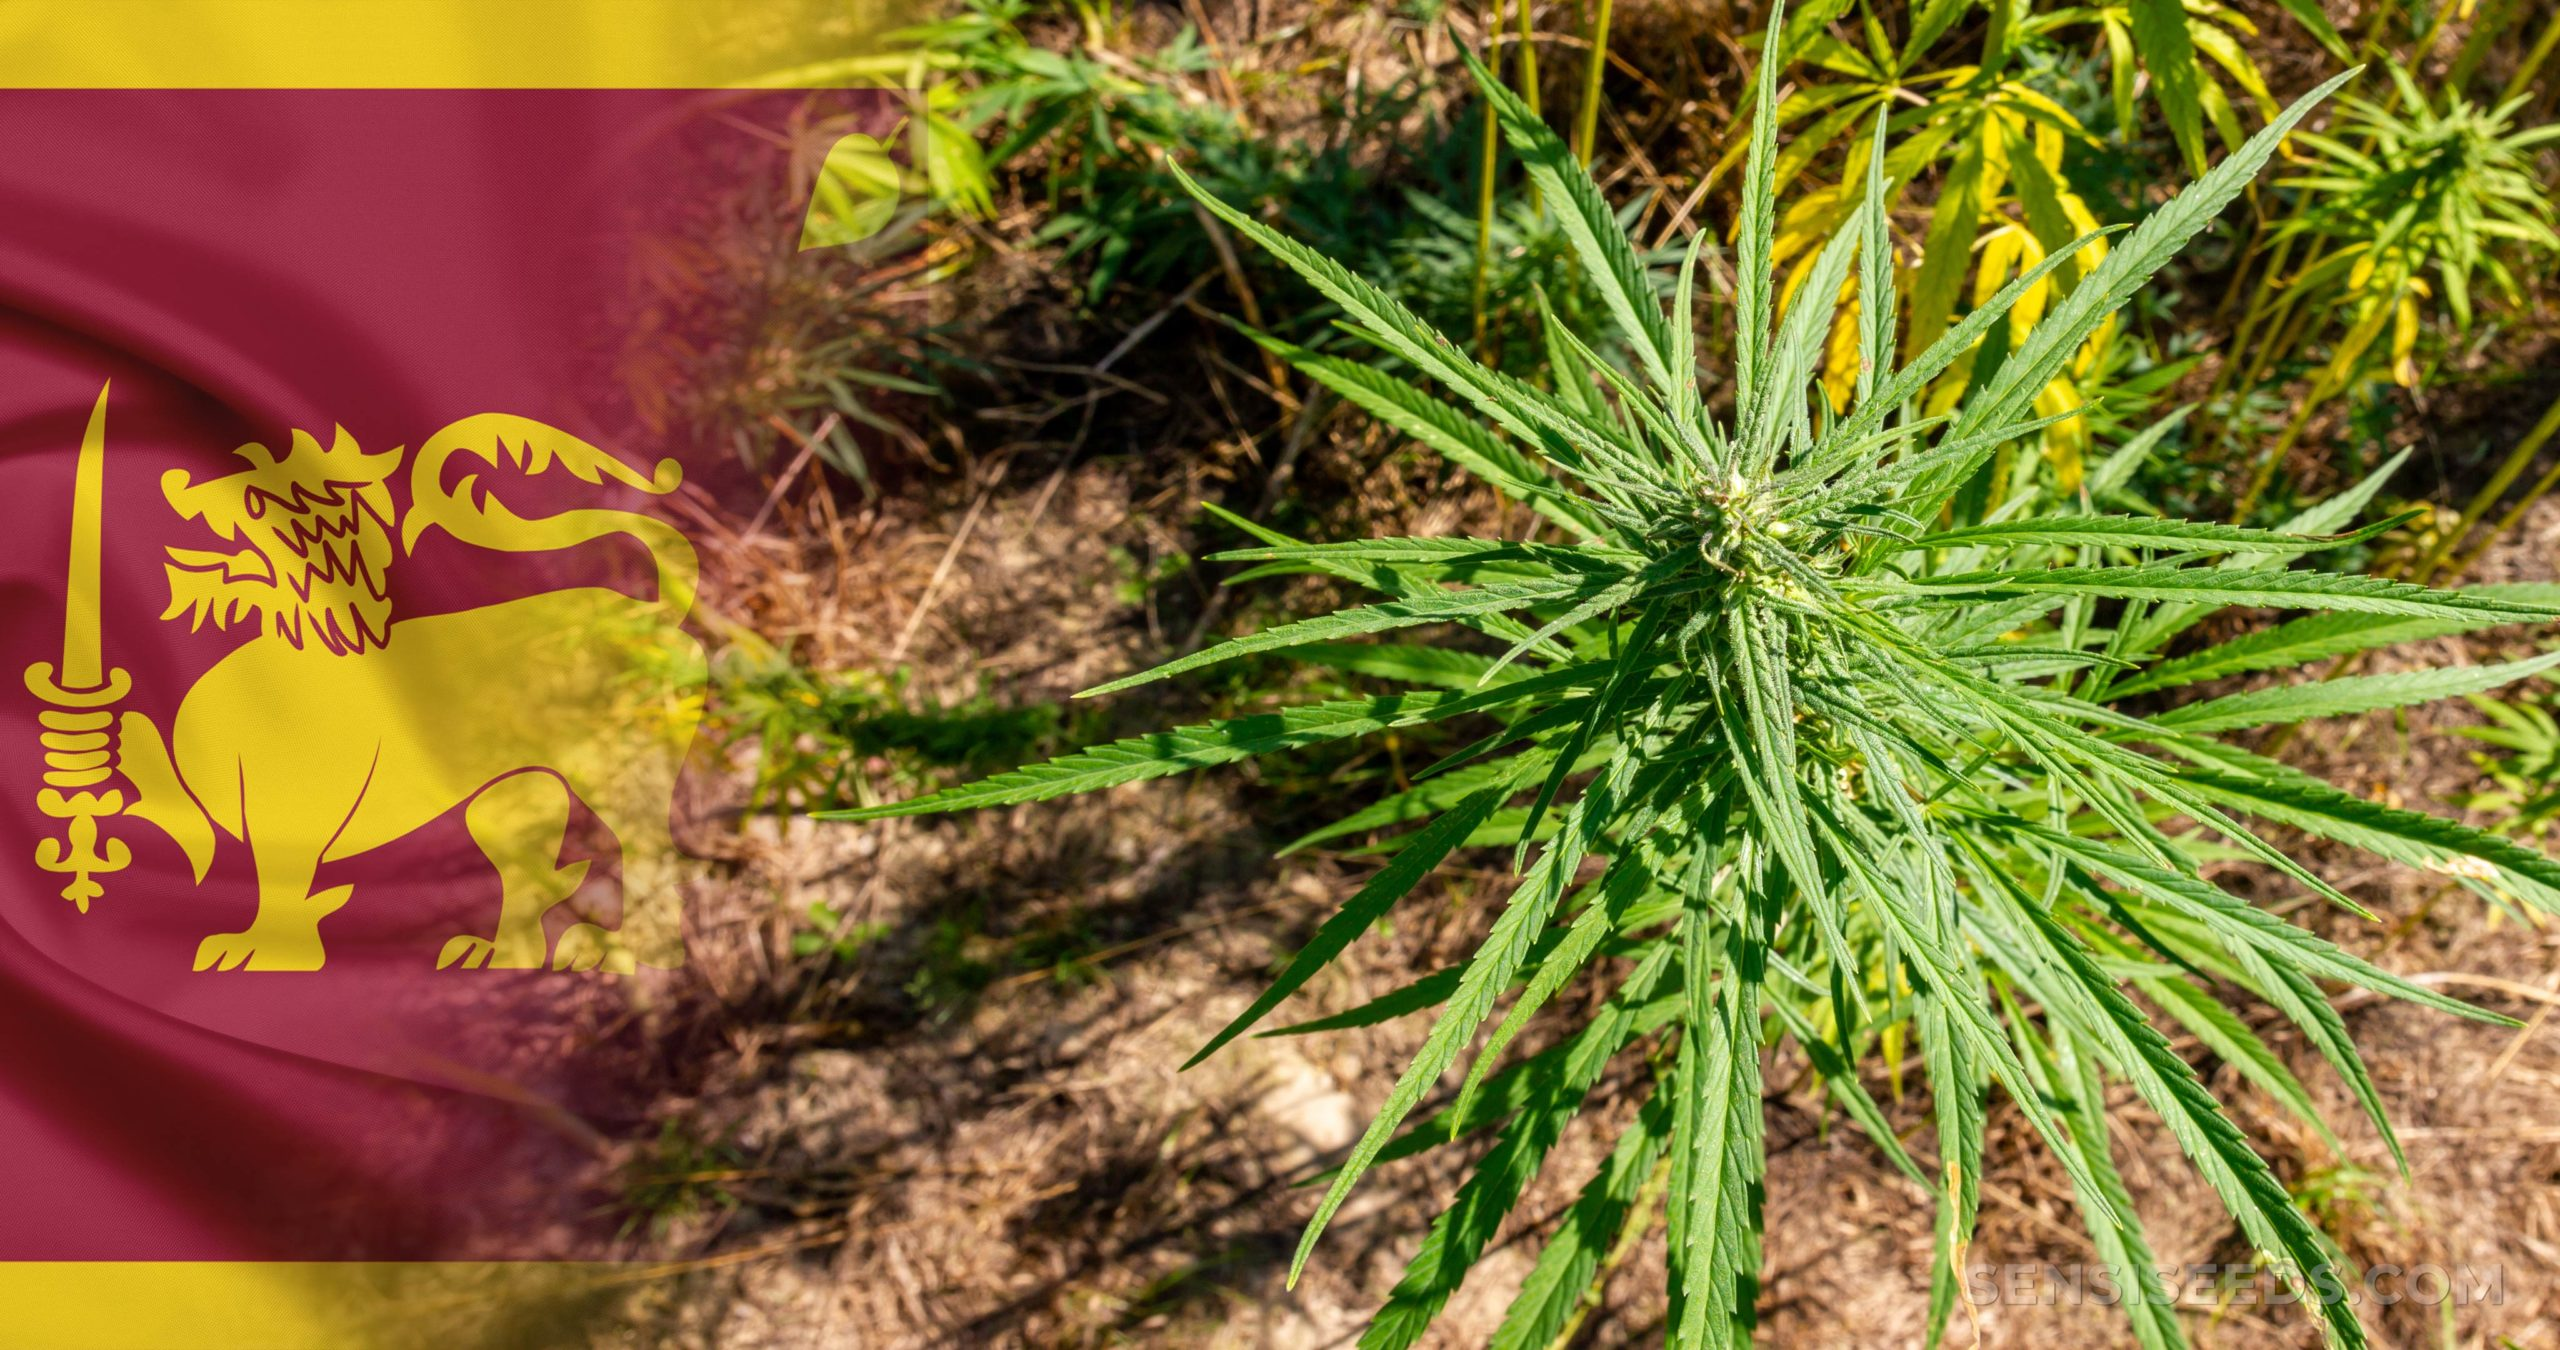 The Sri Lankan flag next to a cannabis plant growing from the soil